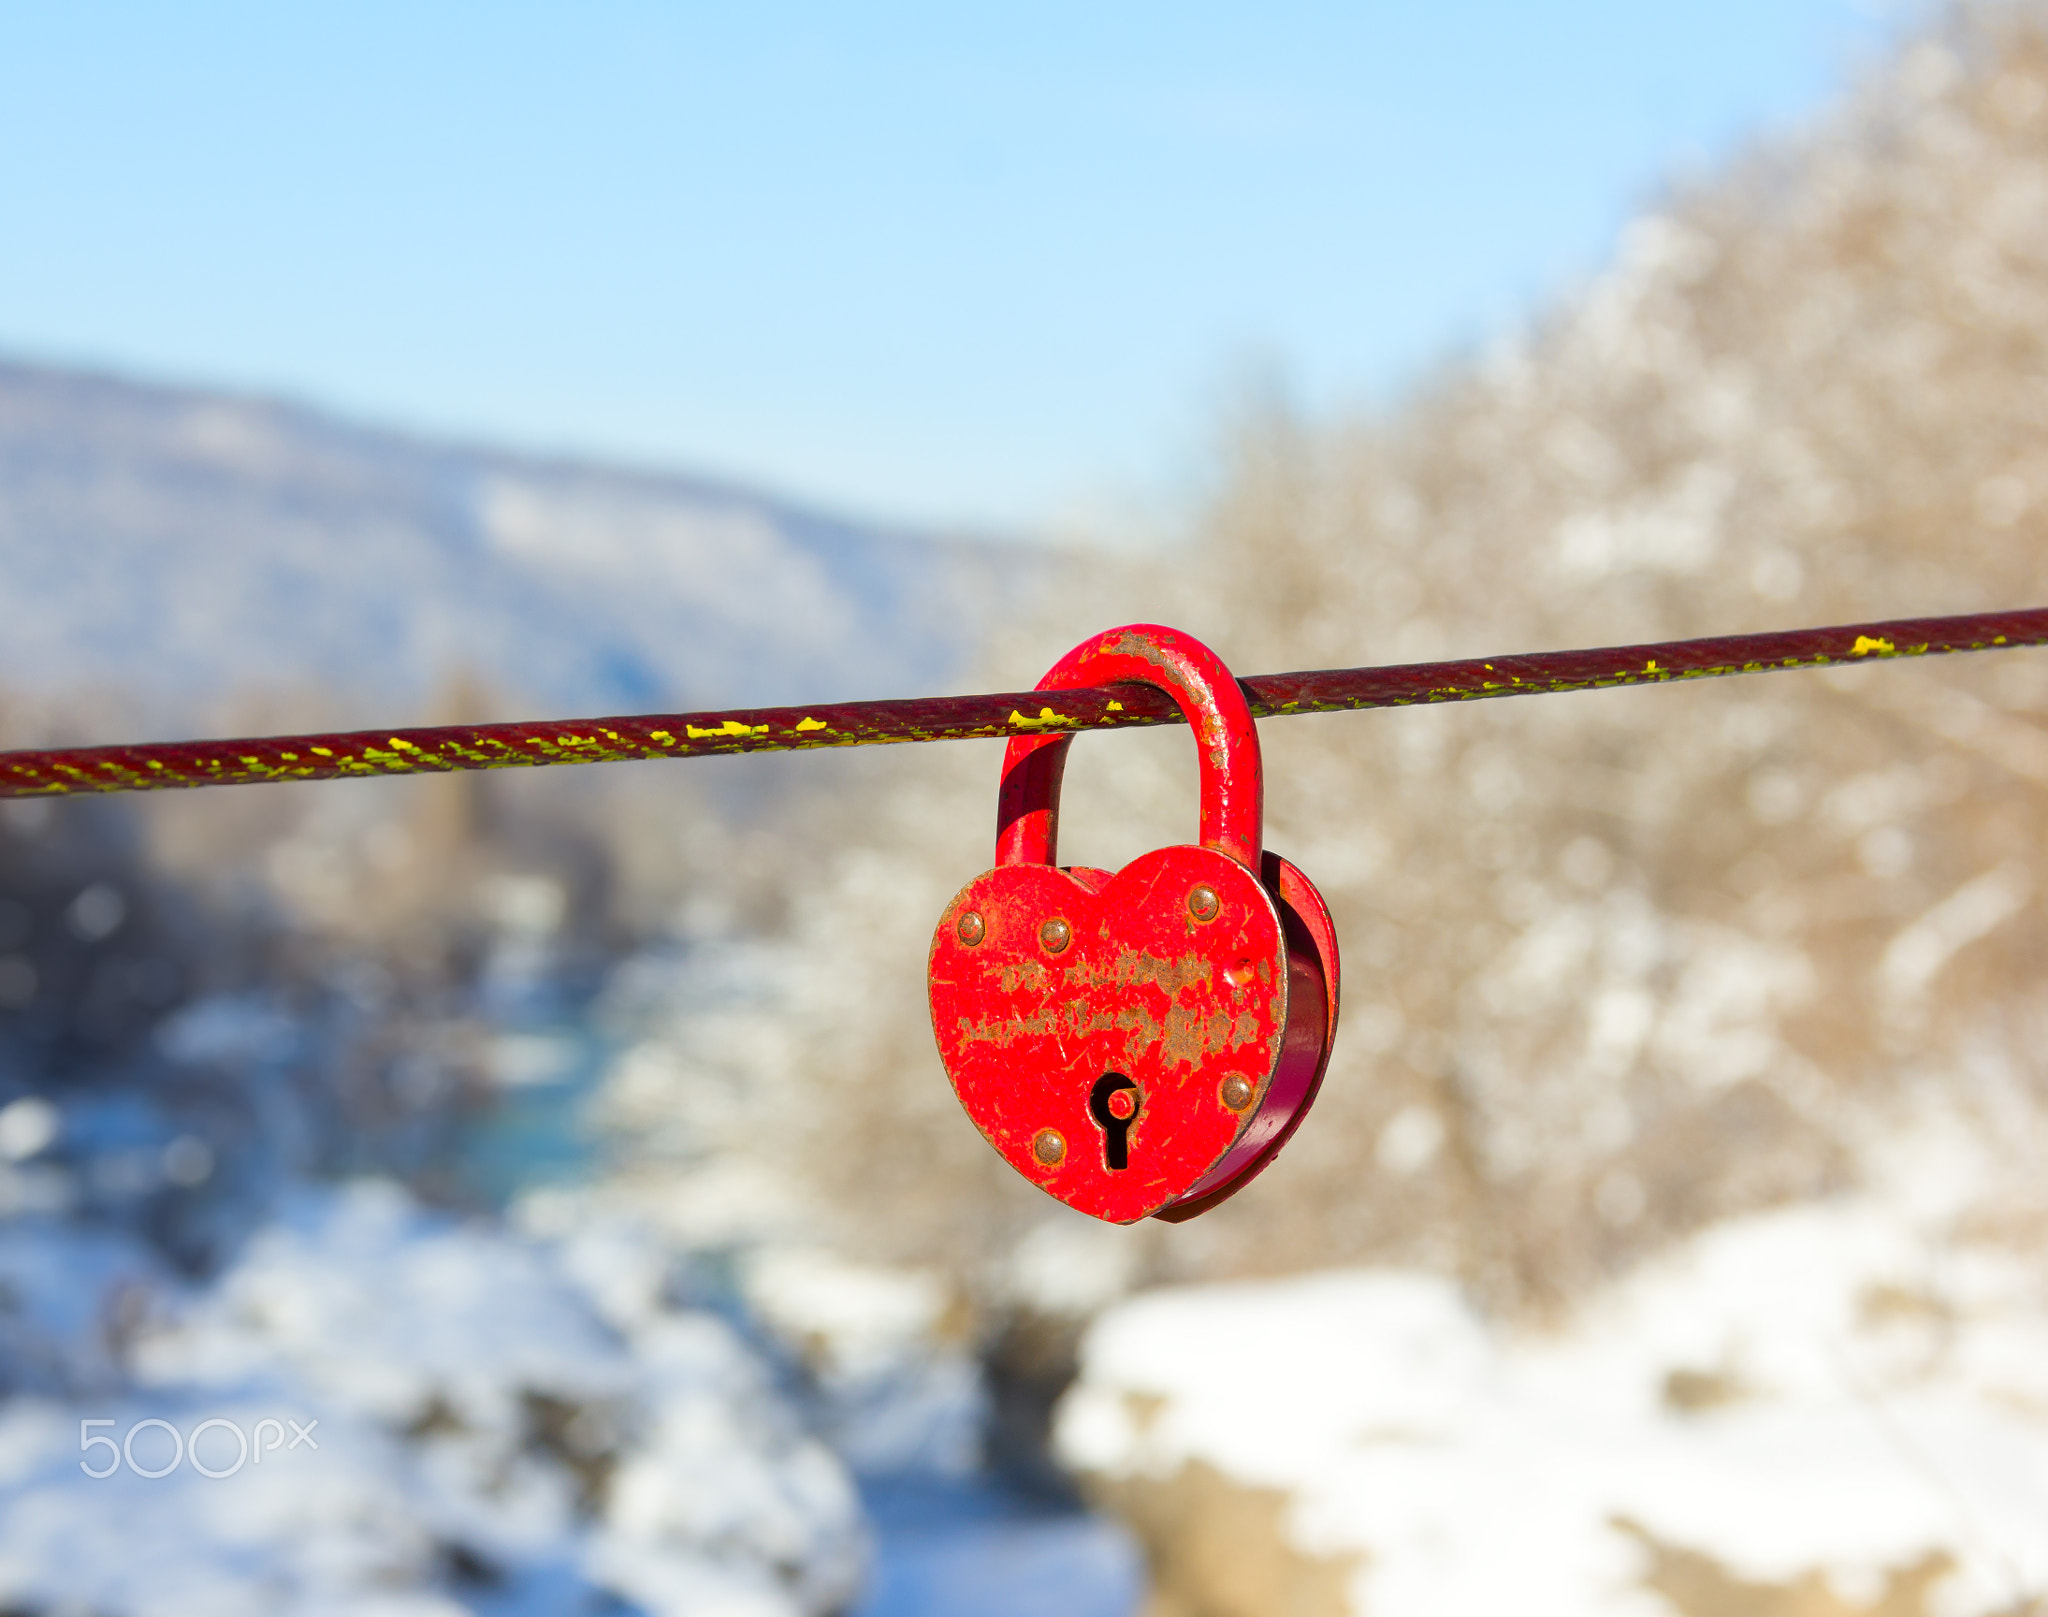 old closed red padlock in heart shape on a background of a winter mountain landscape close up